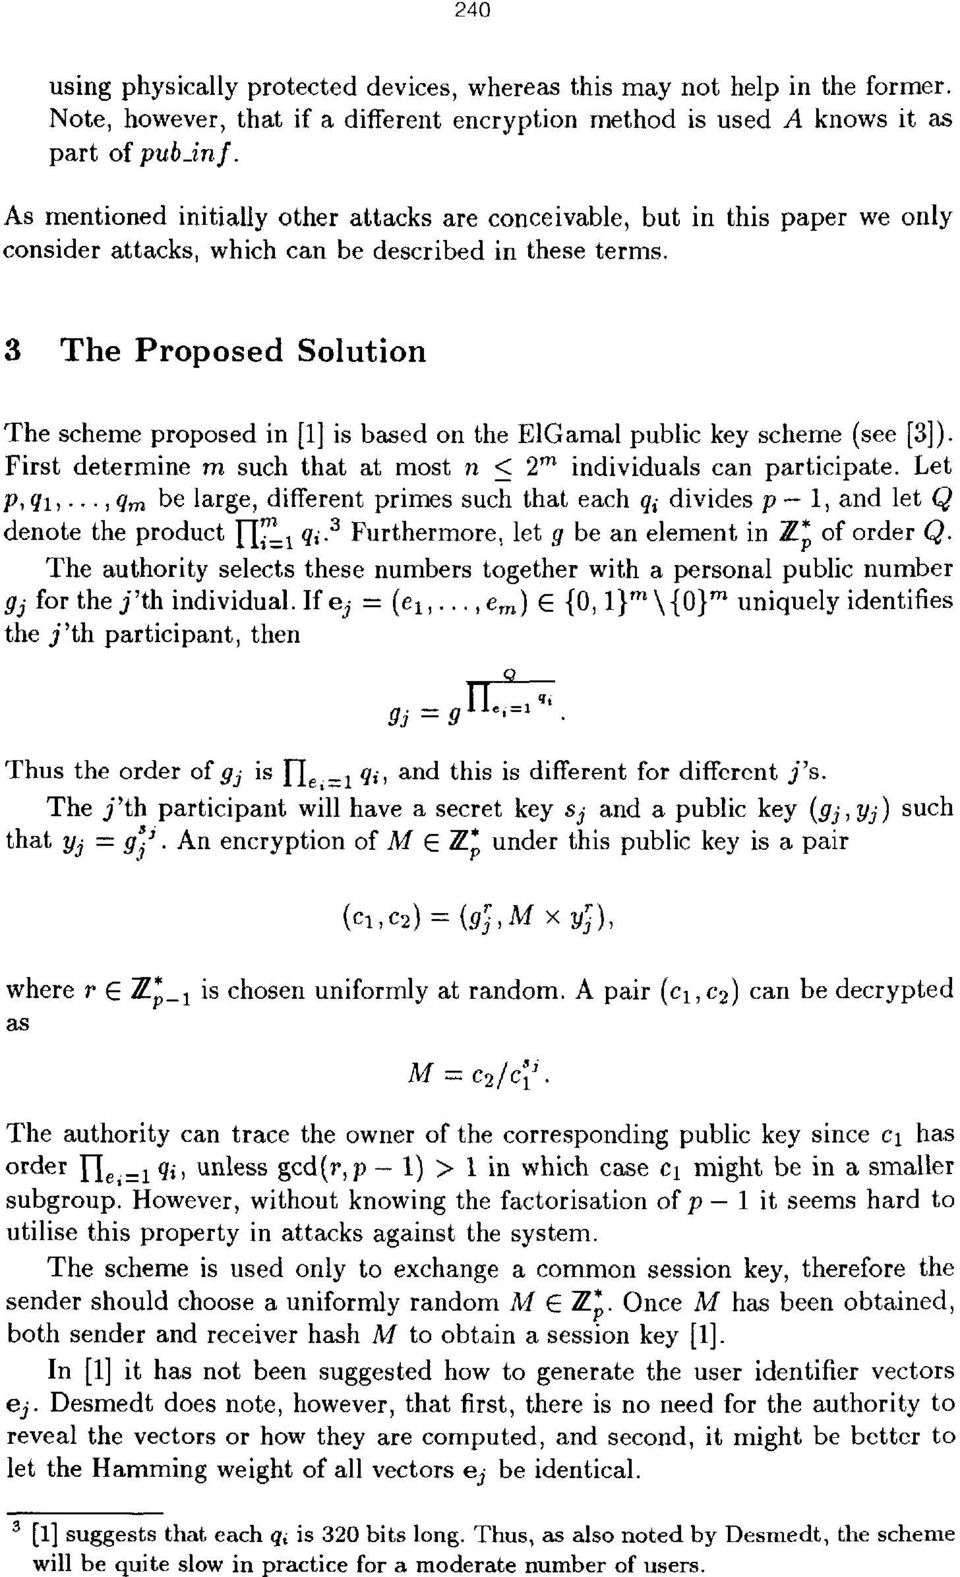 3 The Proposed Solution The scheme proposed in [l] is based on the ElGamal public key scheme (see [3]). First determine m such that at most n _< 2 individuals can participate. Let p, 41,.